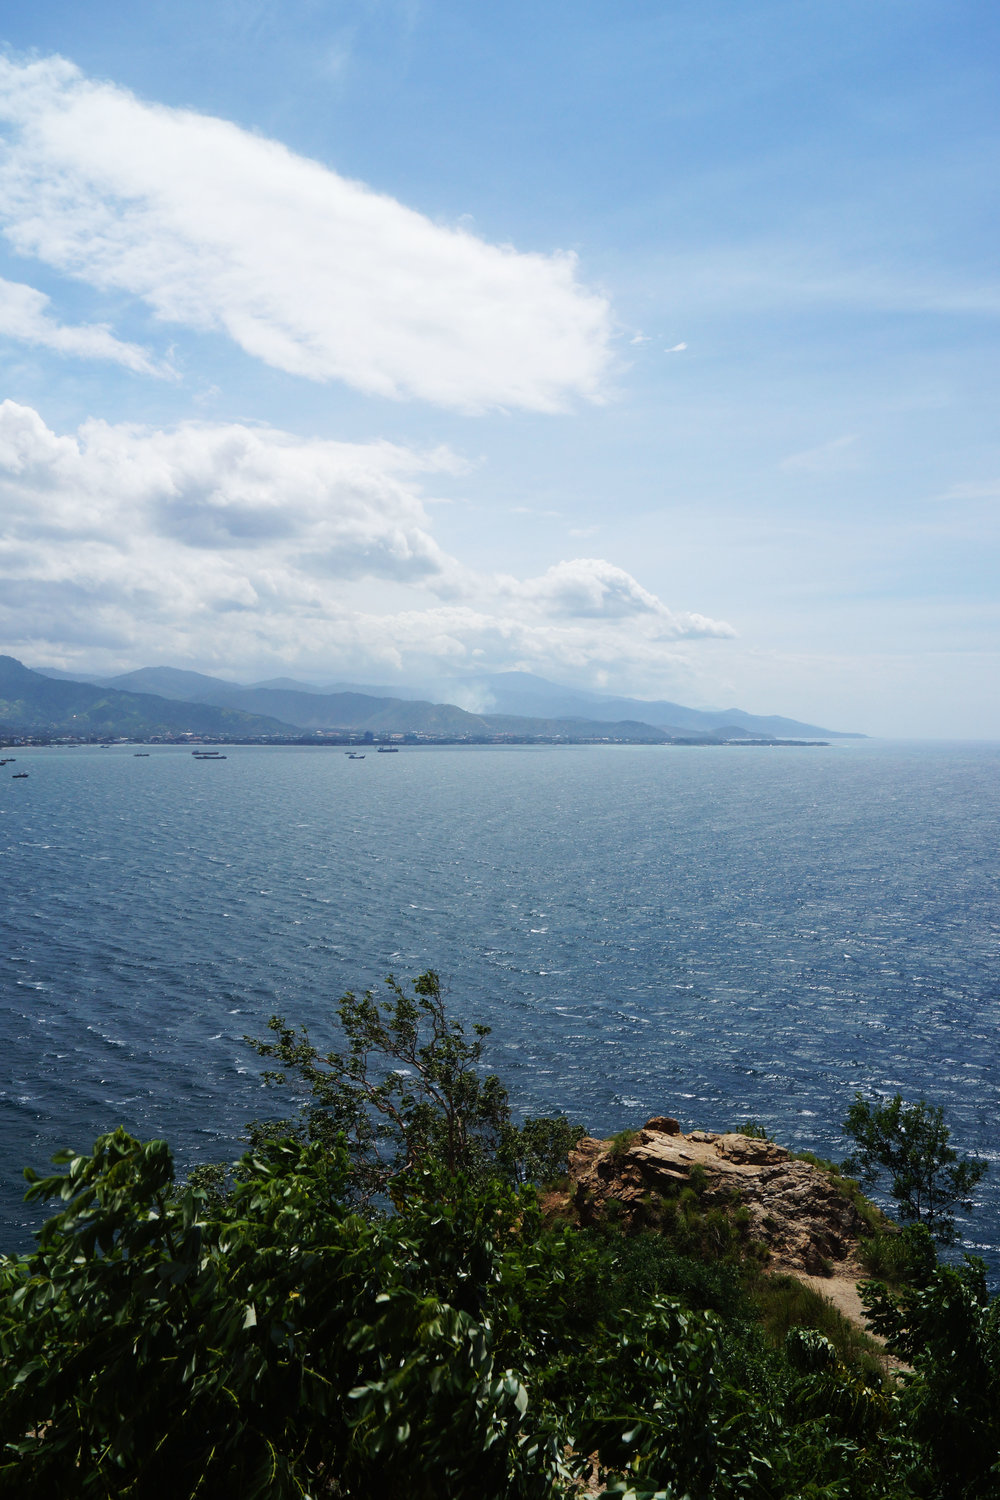 Looking back towards Dili from the foot of the statue.